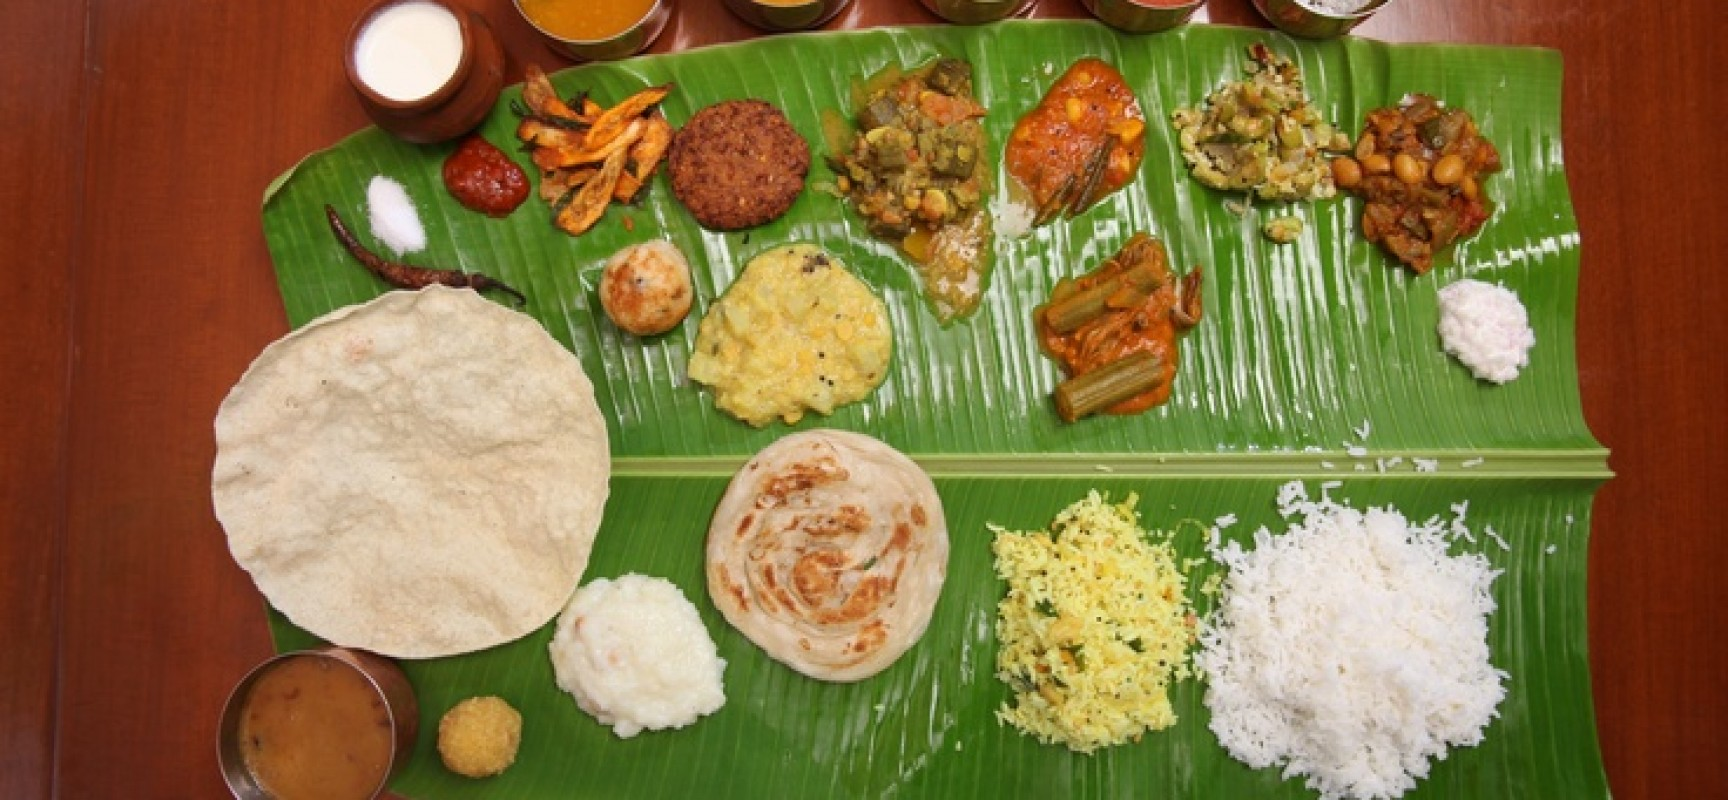 India wedding food crave bits india wedding food forumfinder Choice Image